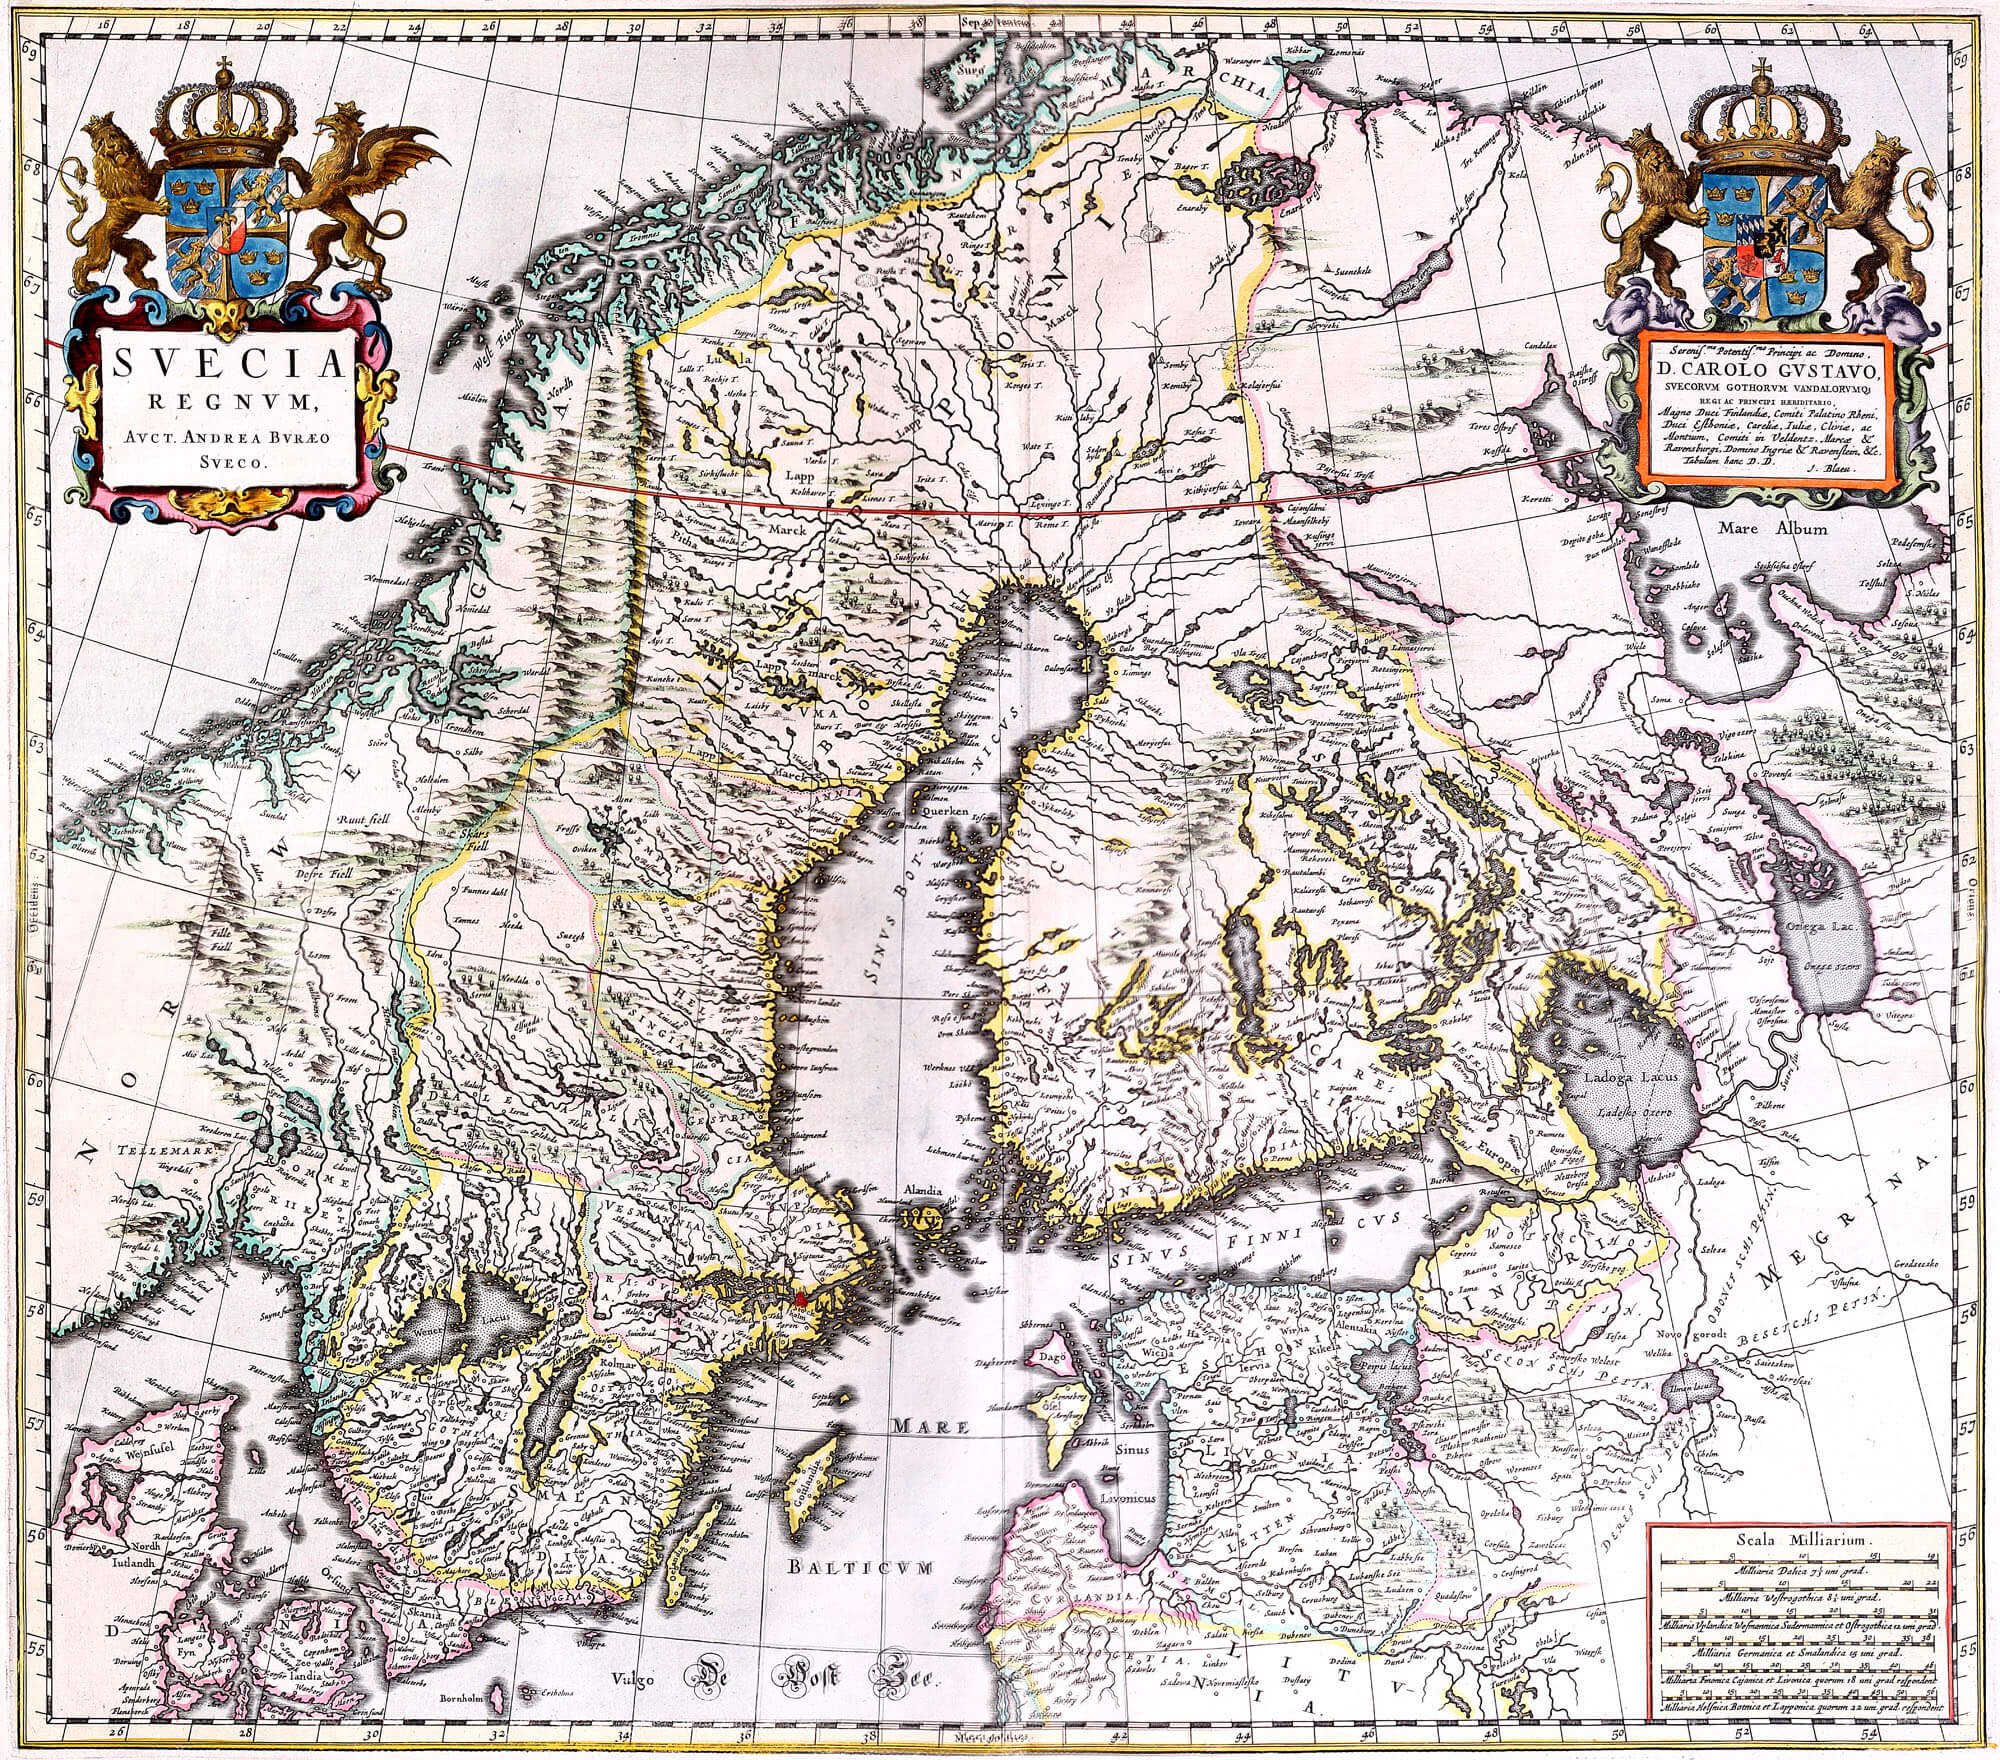 Atlas maior vol 2 z 1 23 russia eastern europe l brown collection z 1 23 02 sweden gumiabroncs Choice Image